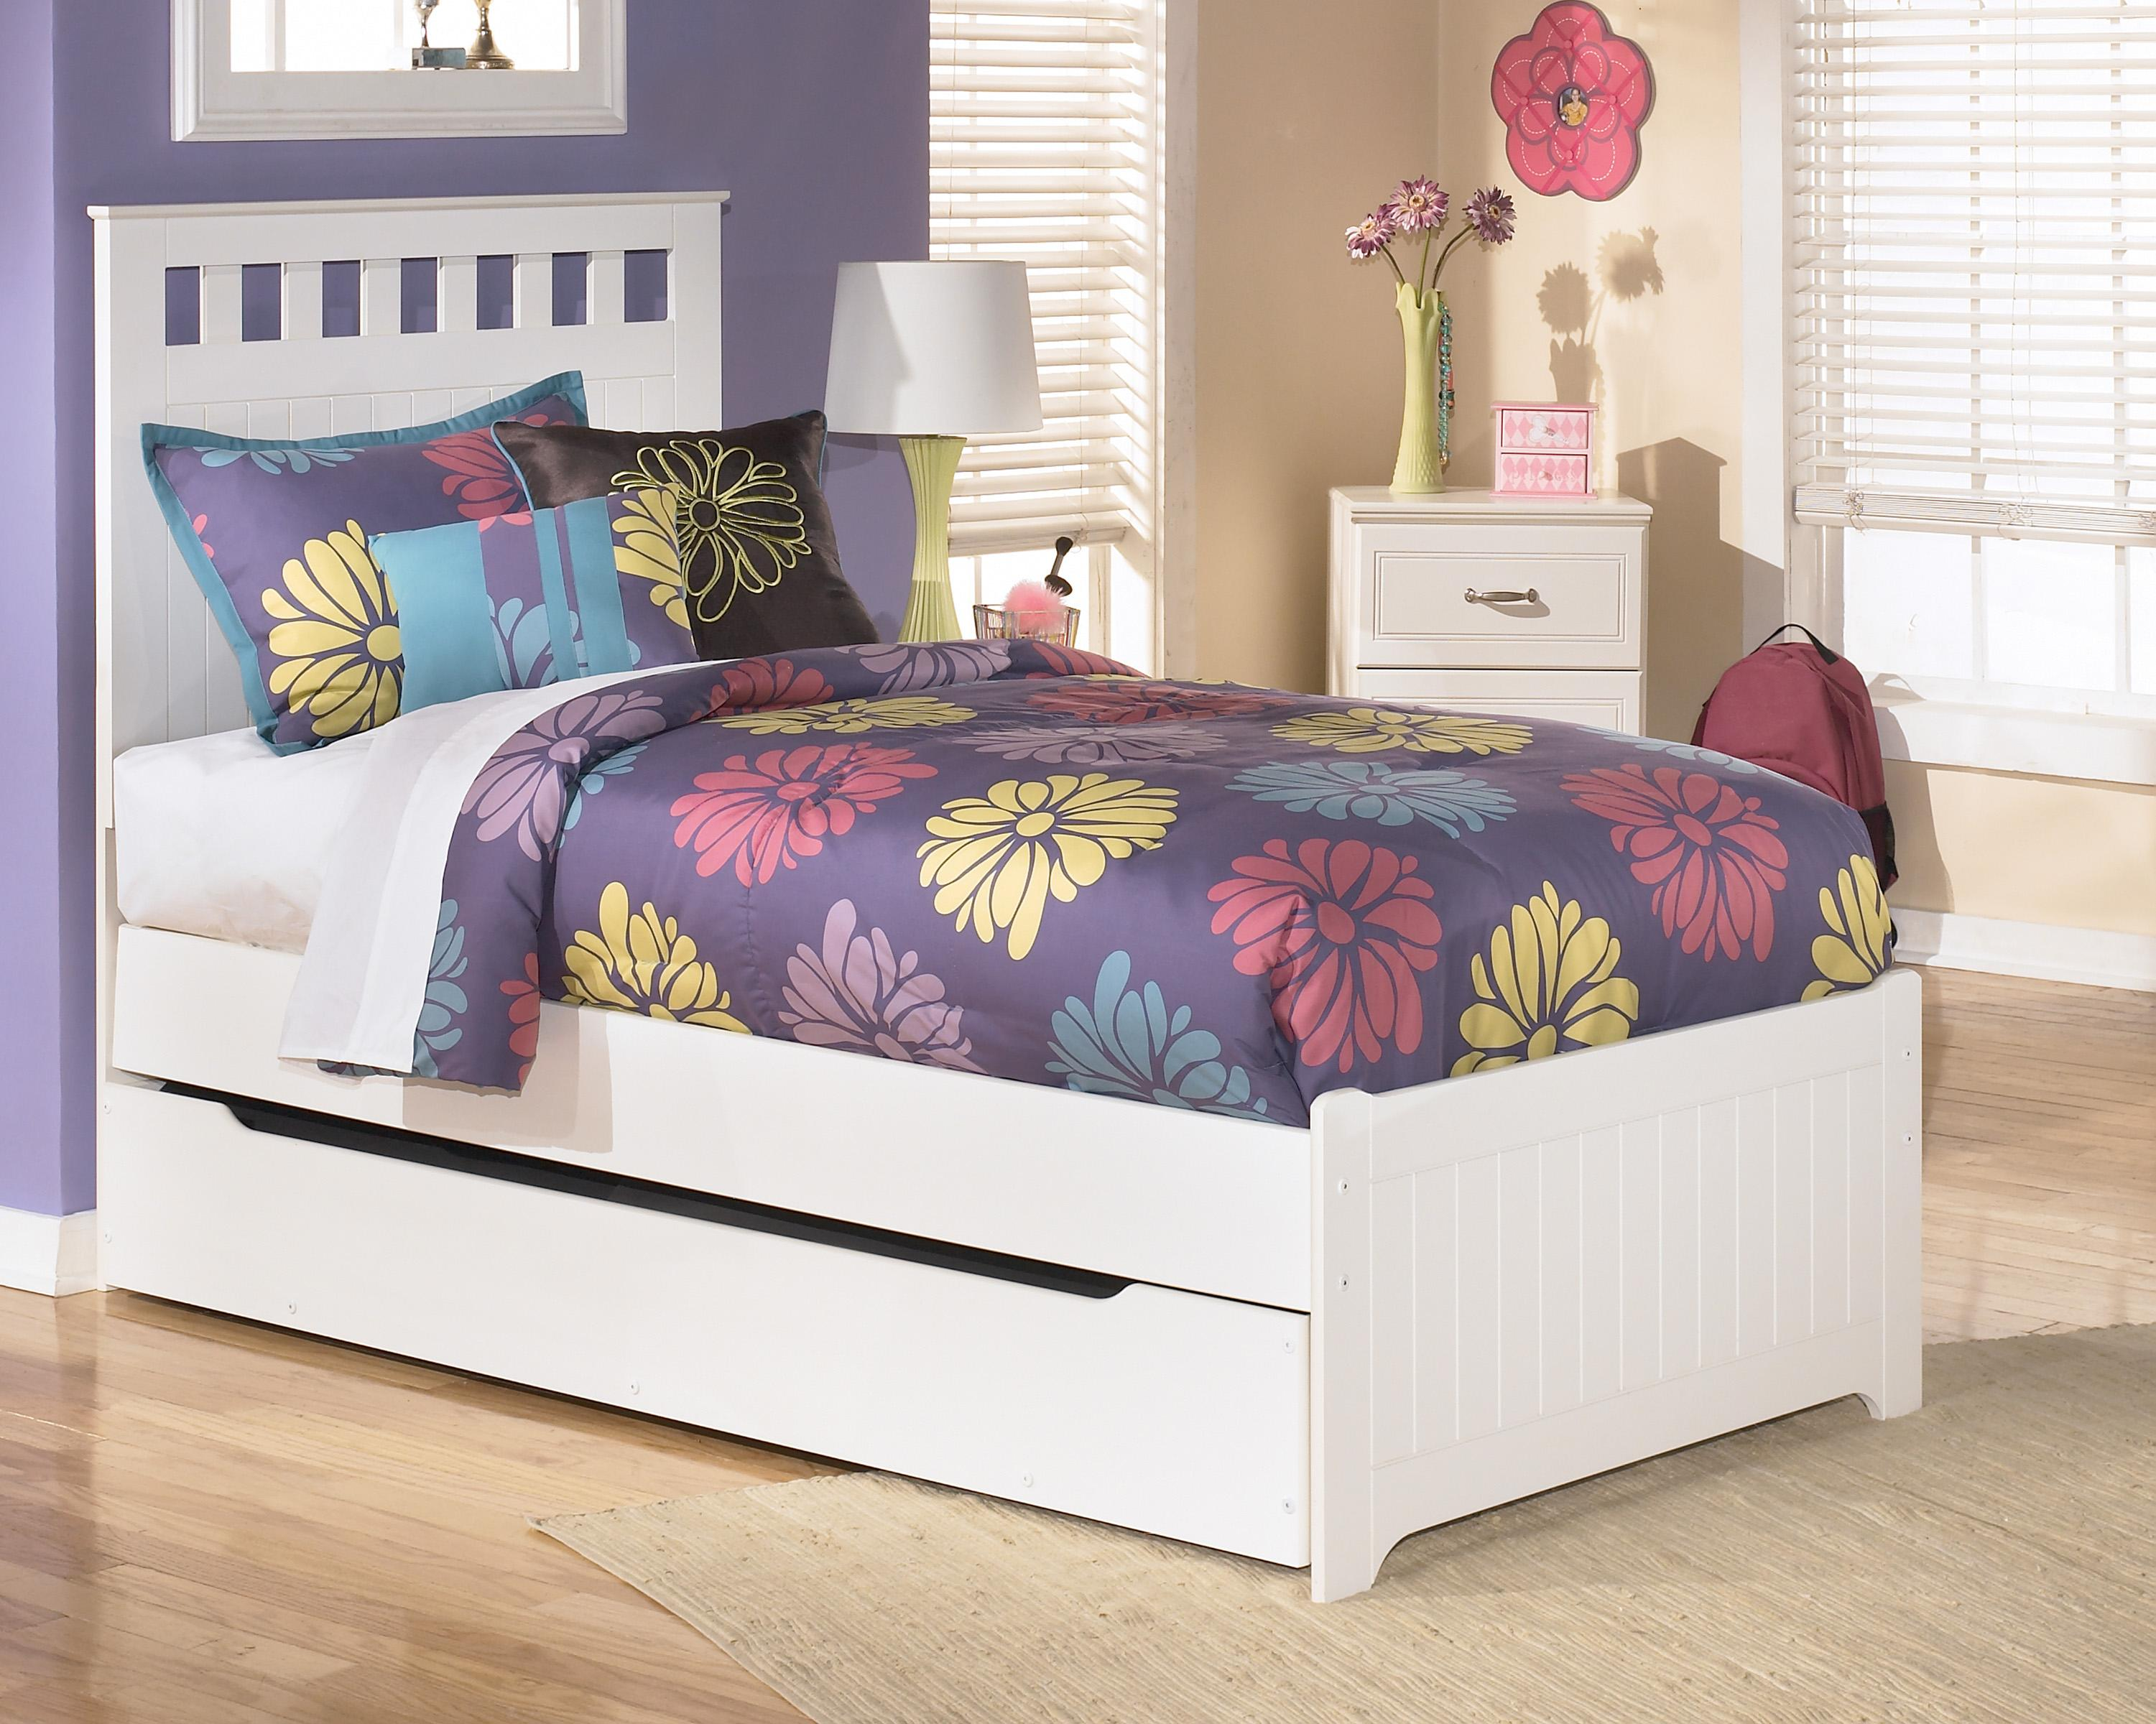 Signature Design by Ashley Lulu Twin Bed with Storage/Trundle - Item Number: B102-52+51+60+82